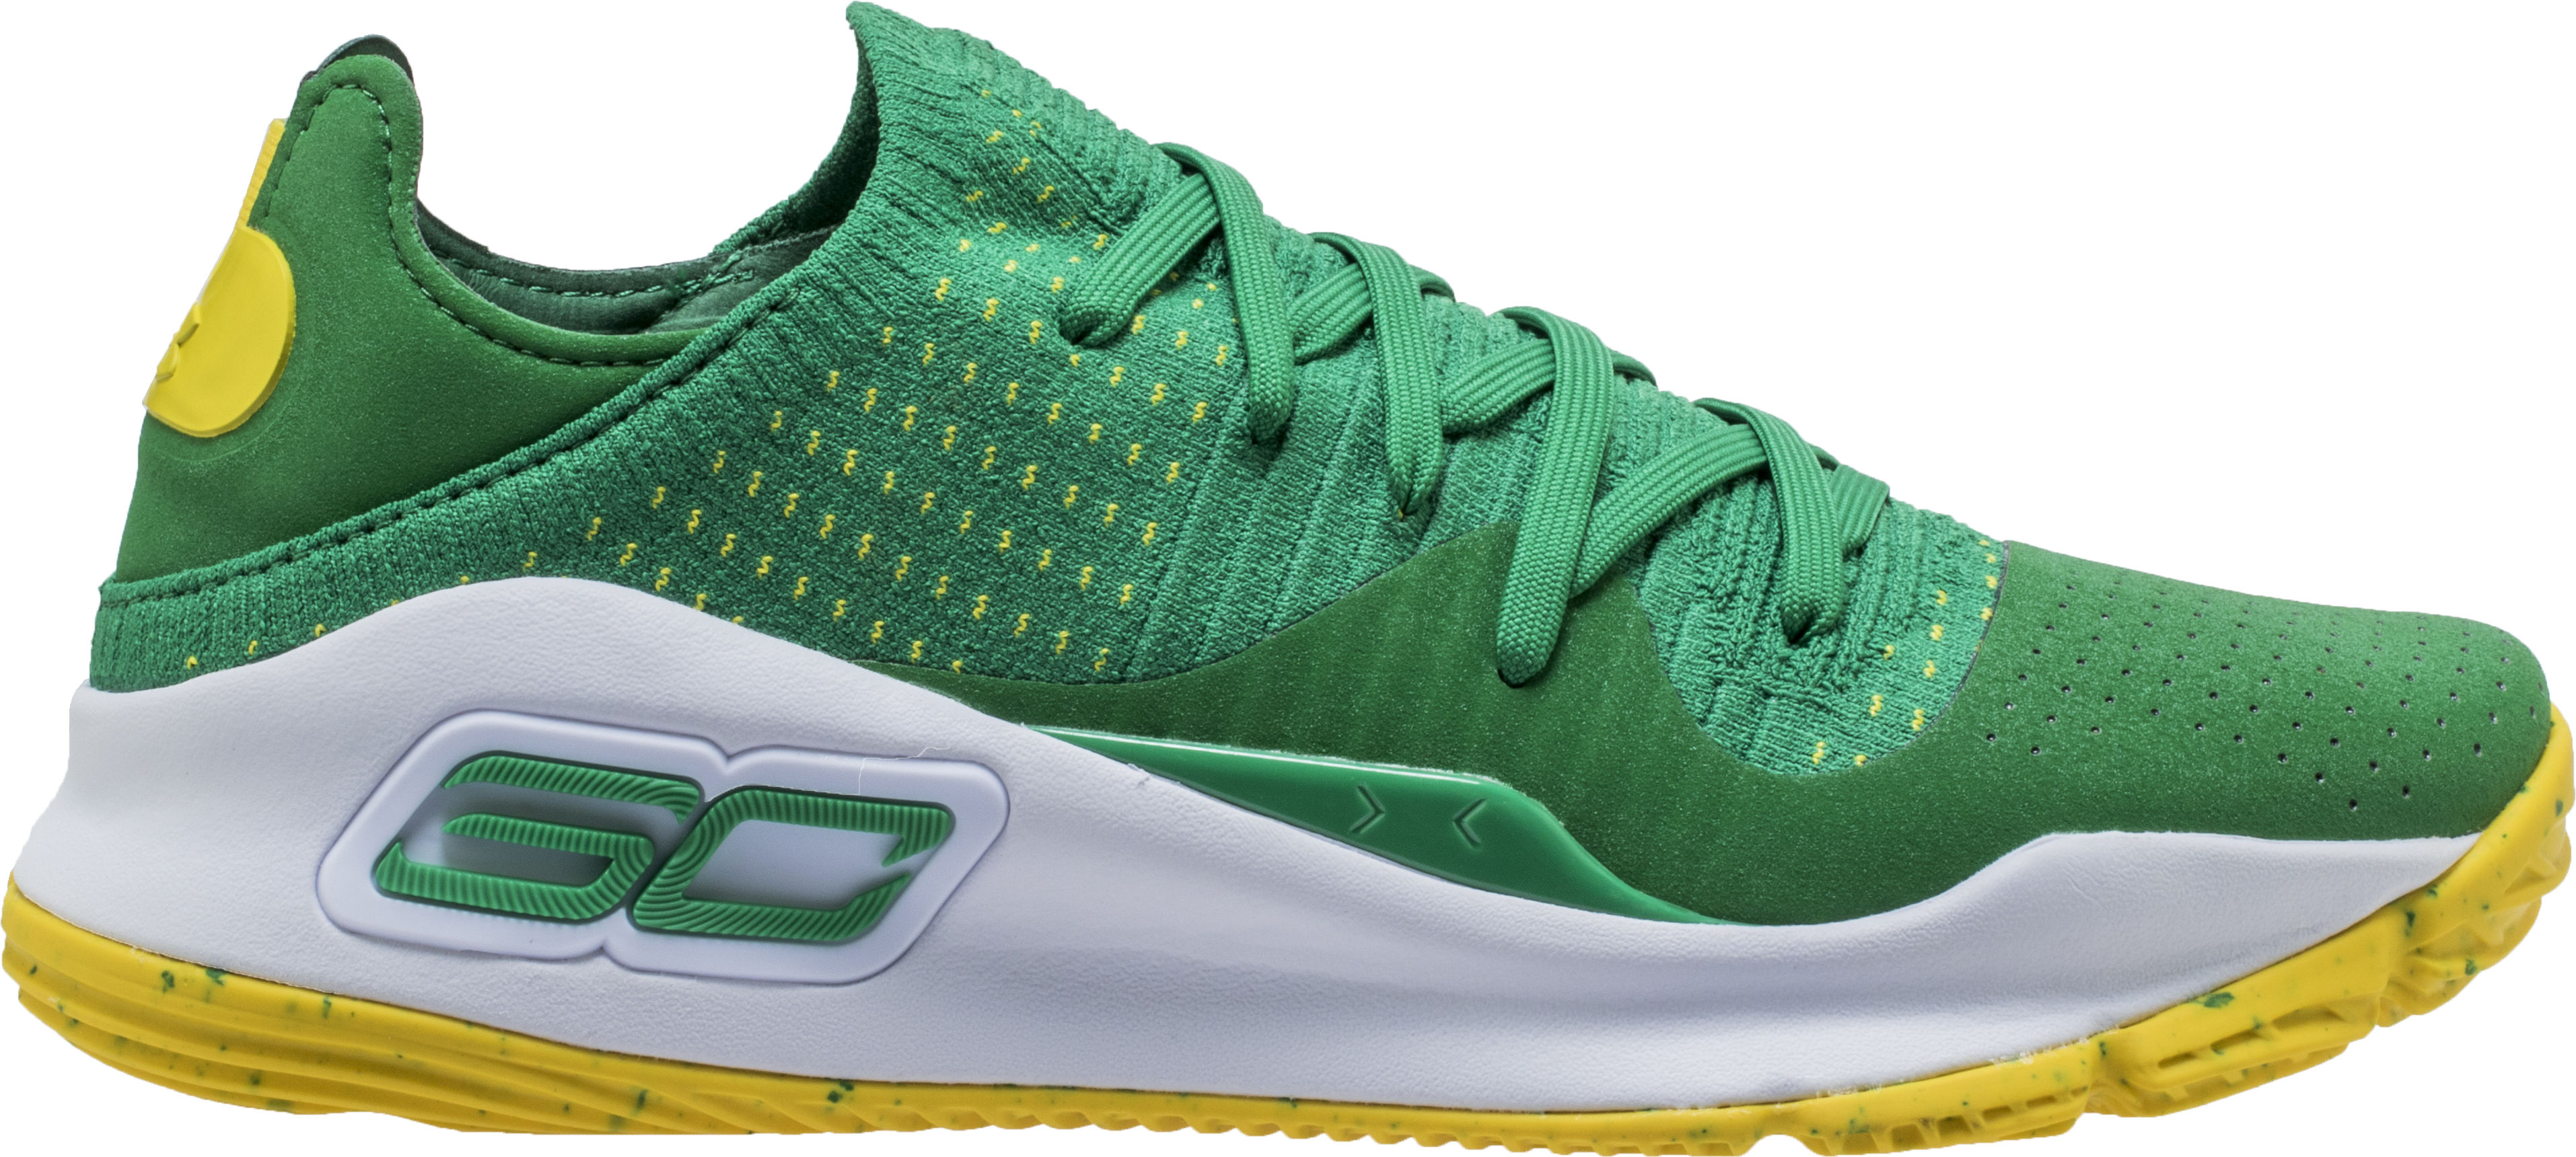 25ca5f4e9a957 The Oakland Athletics and San Francisco Giants Get Their Own Curry 4 ...